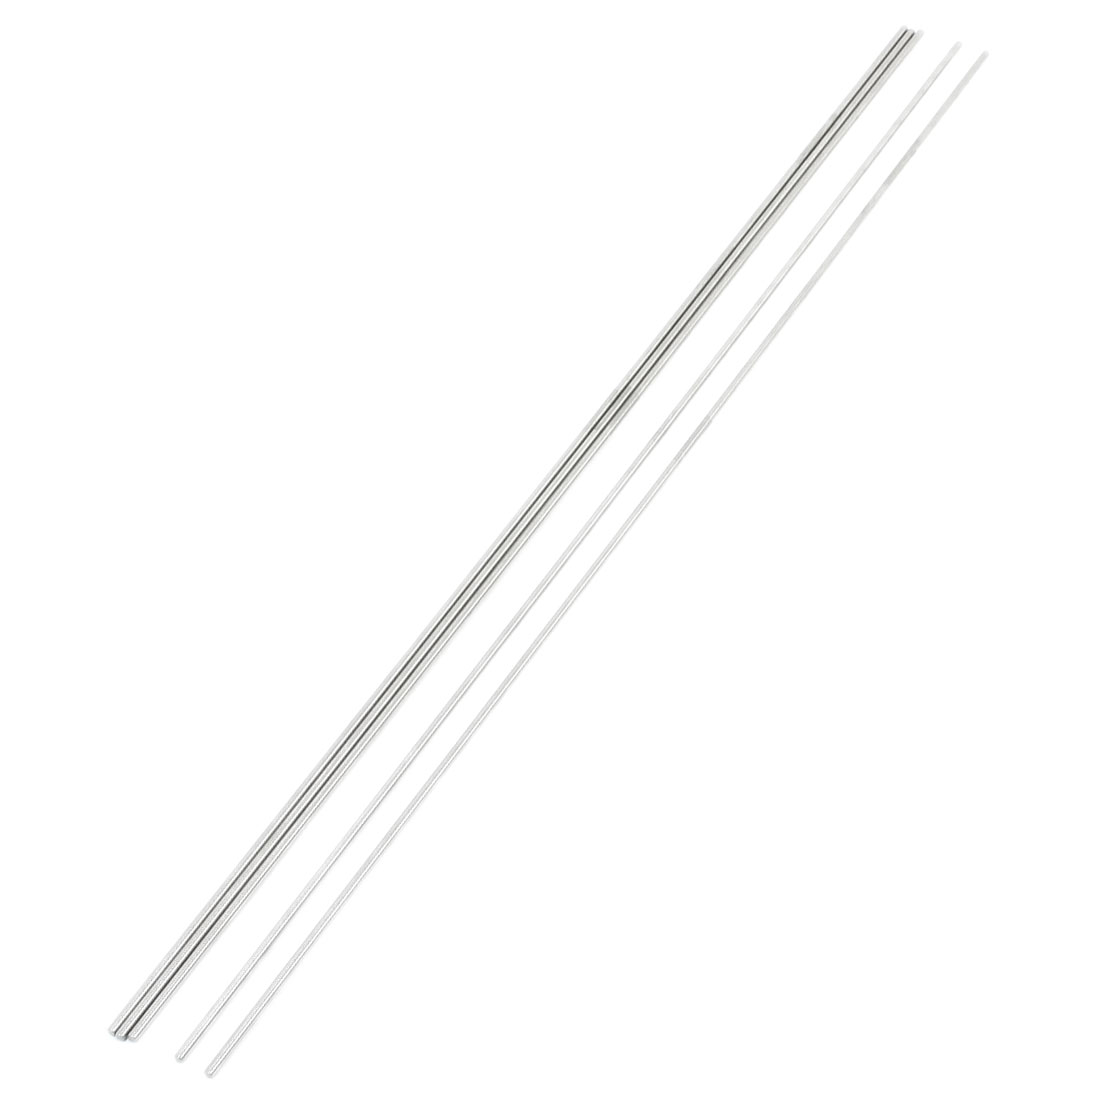 5 Pcs DIY RC Model Stainless Steel Circular Round Rod Bar 500mm x 3mm